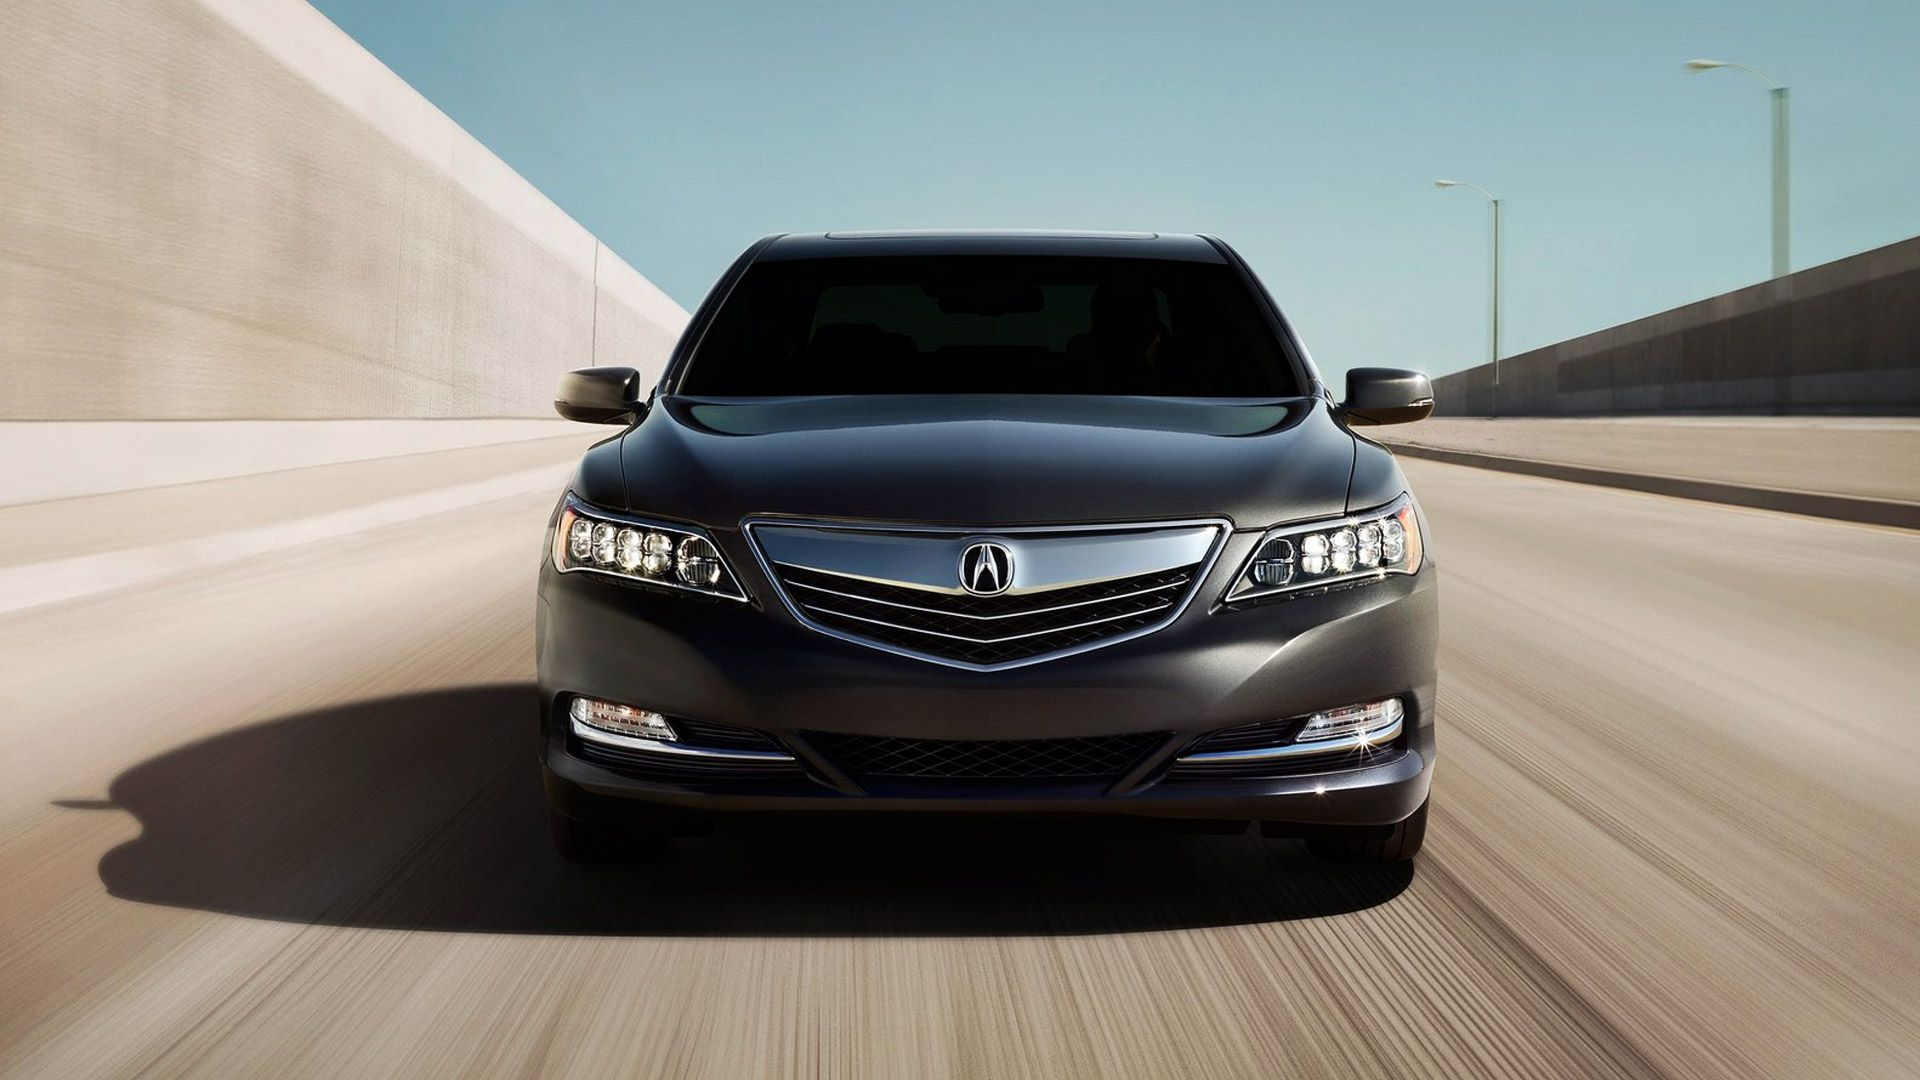 2014 Acura RLX Review Acura, Acura accessories, Hybrid car